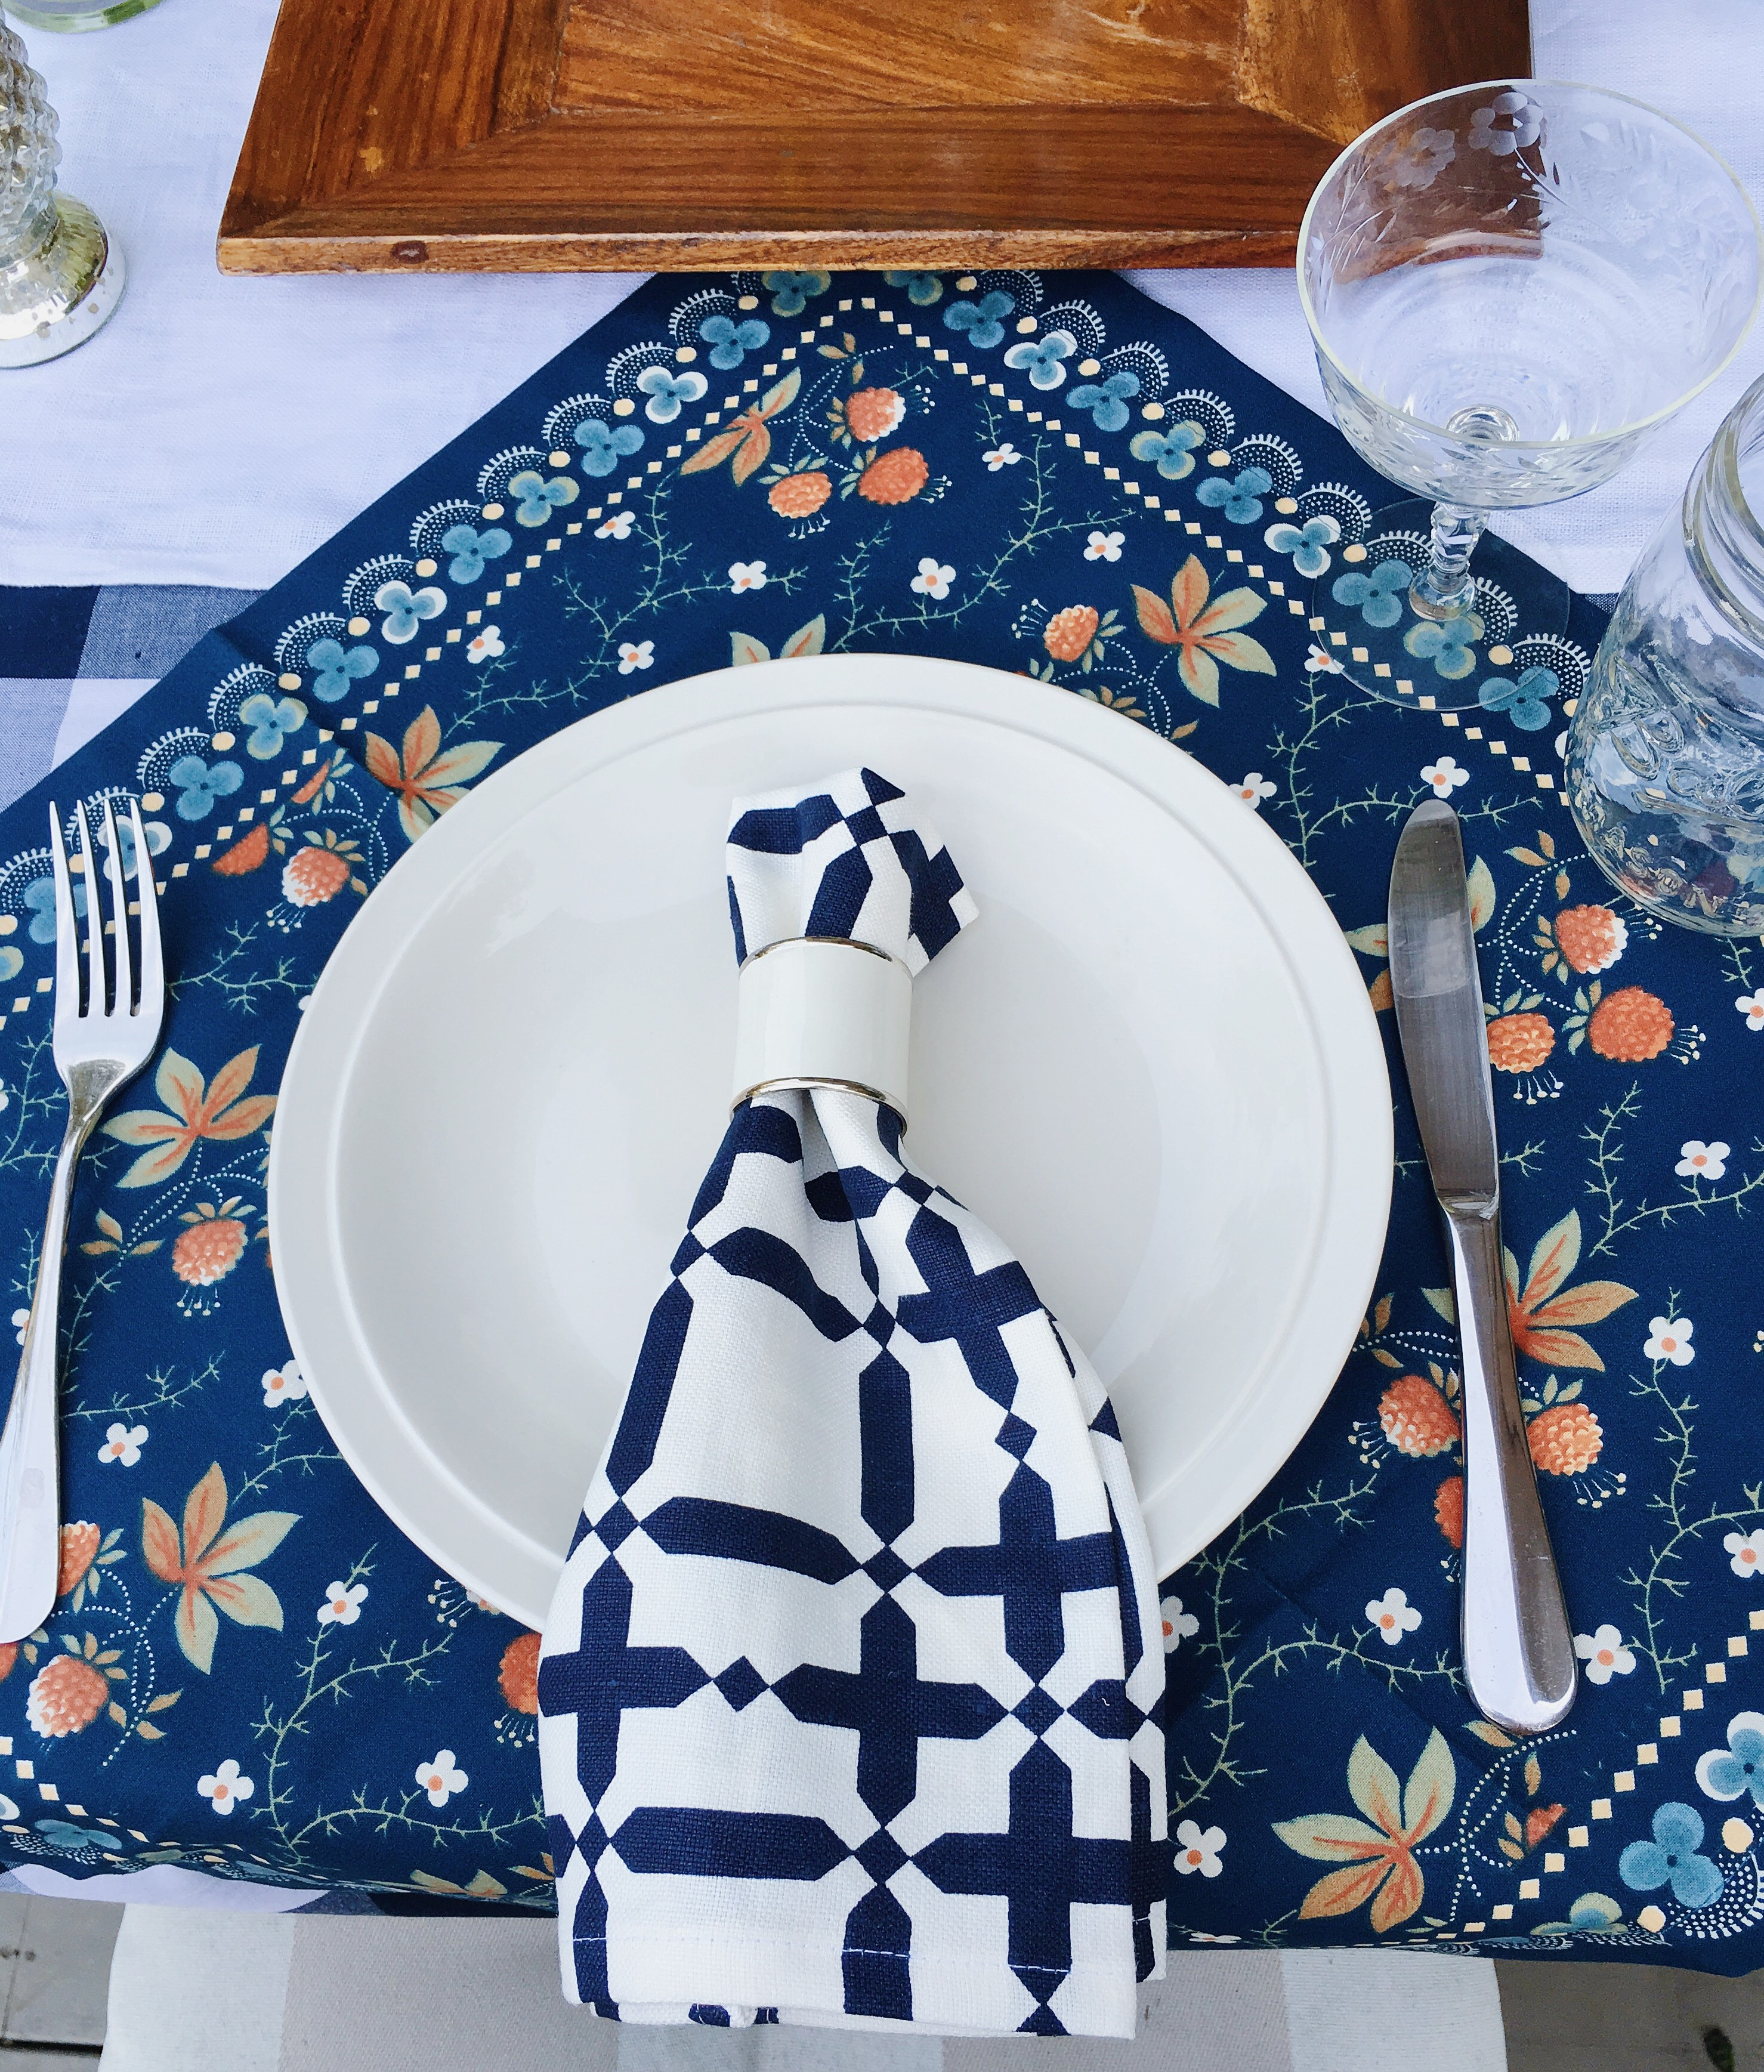 spring picnic table navy blue white COCOCOZY Plaid Napkin